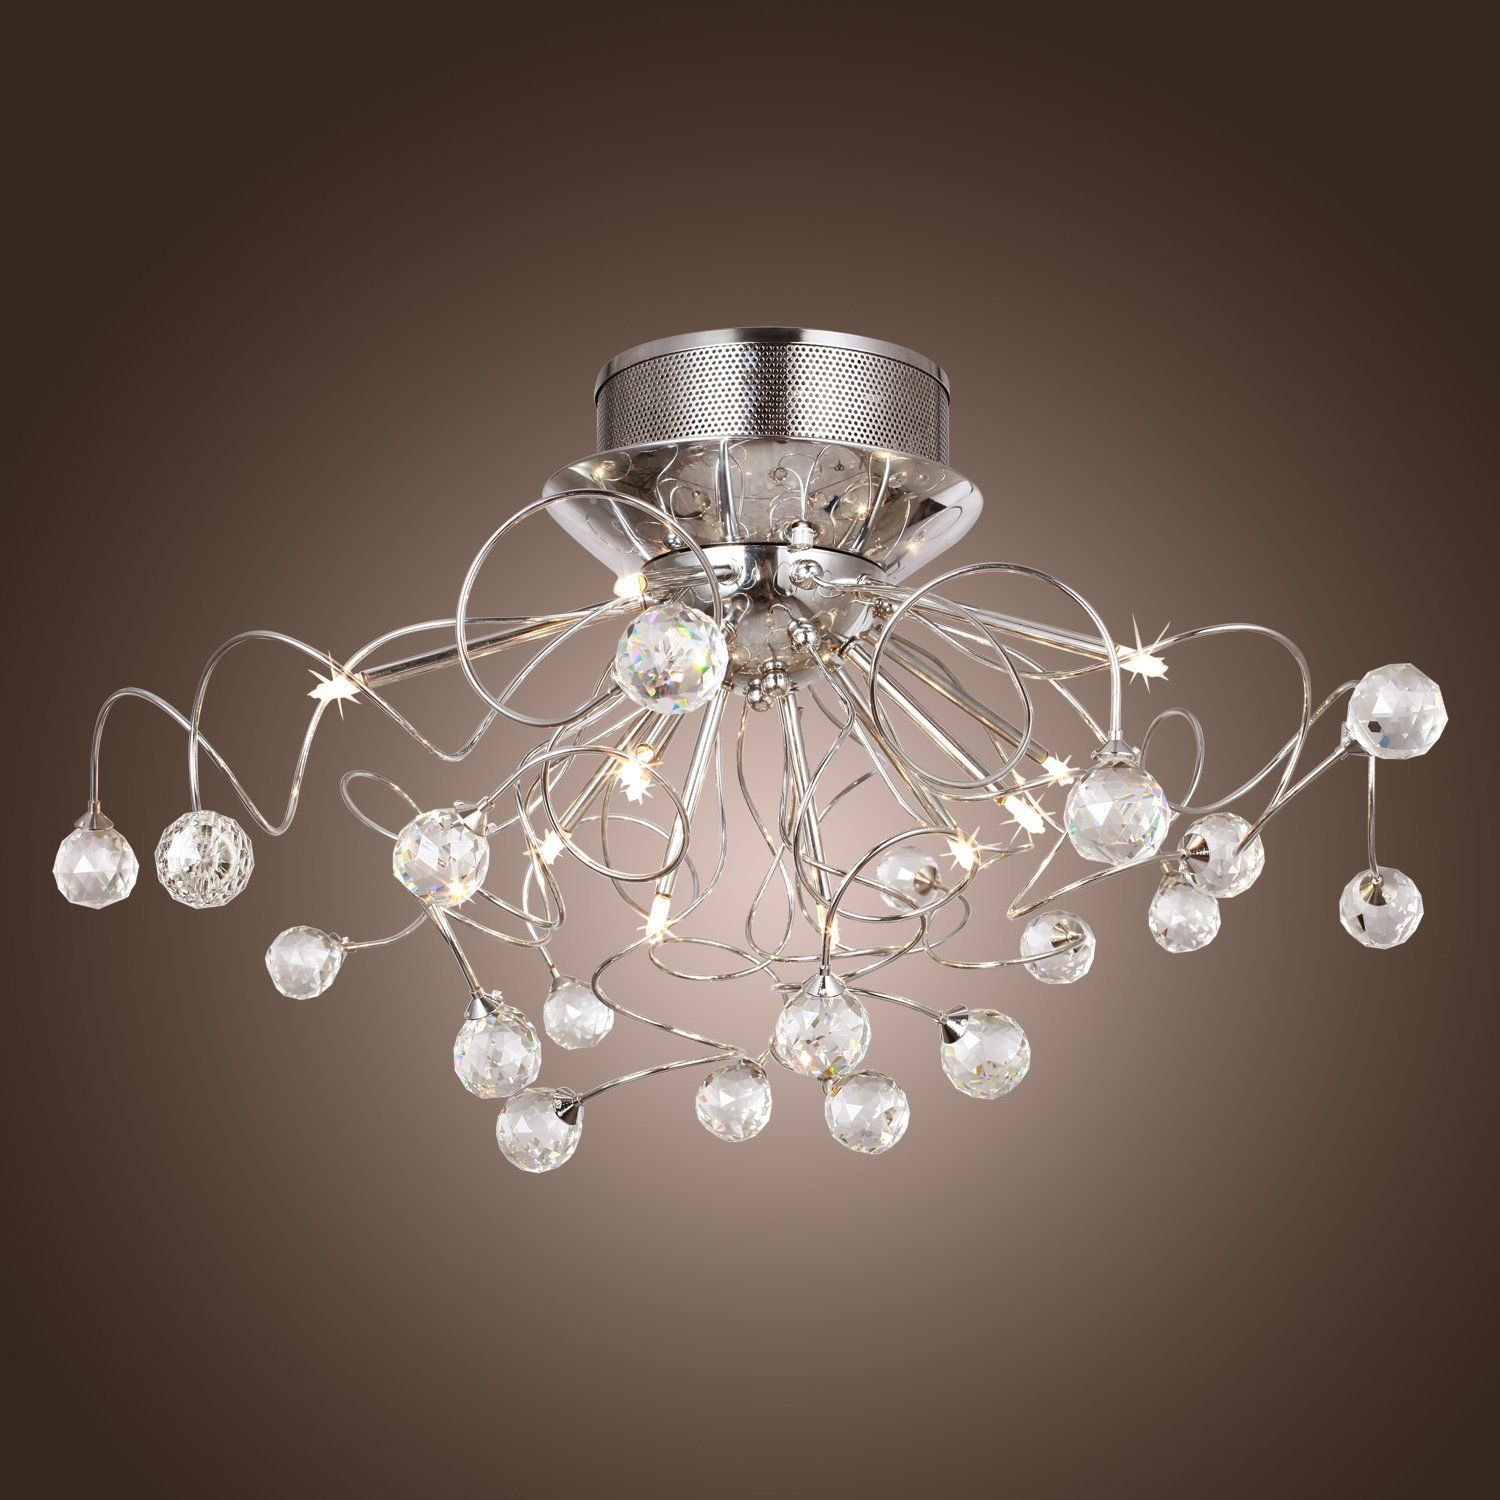 LightInTheBox® Modern Crystal chandelier with 11 Lights Chrom, Flush ...